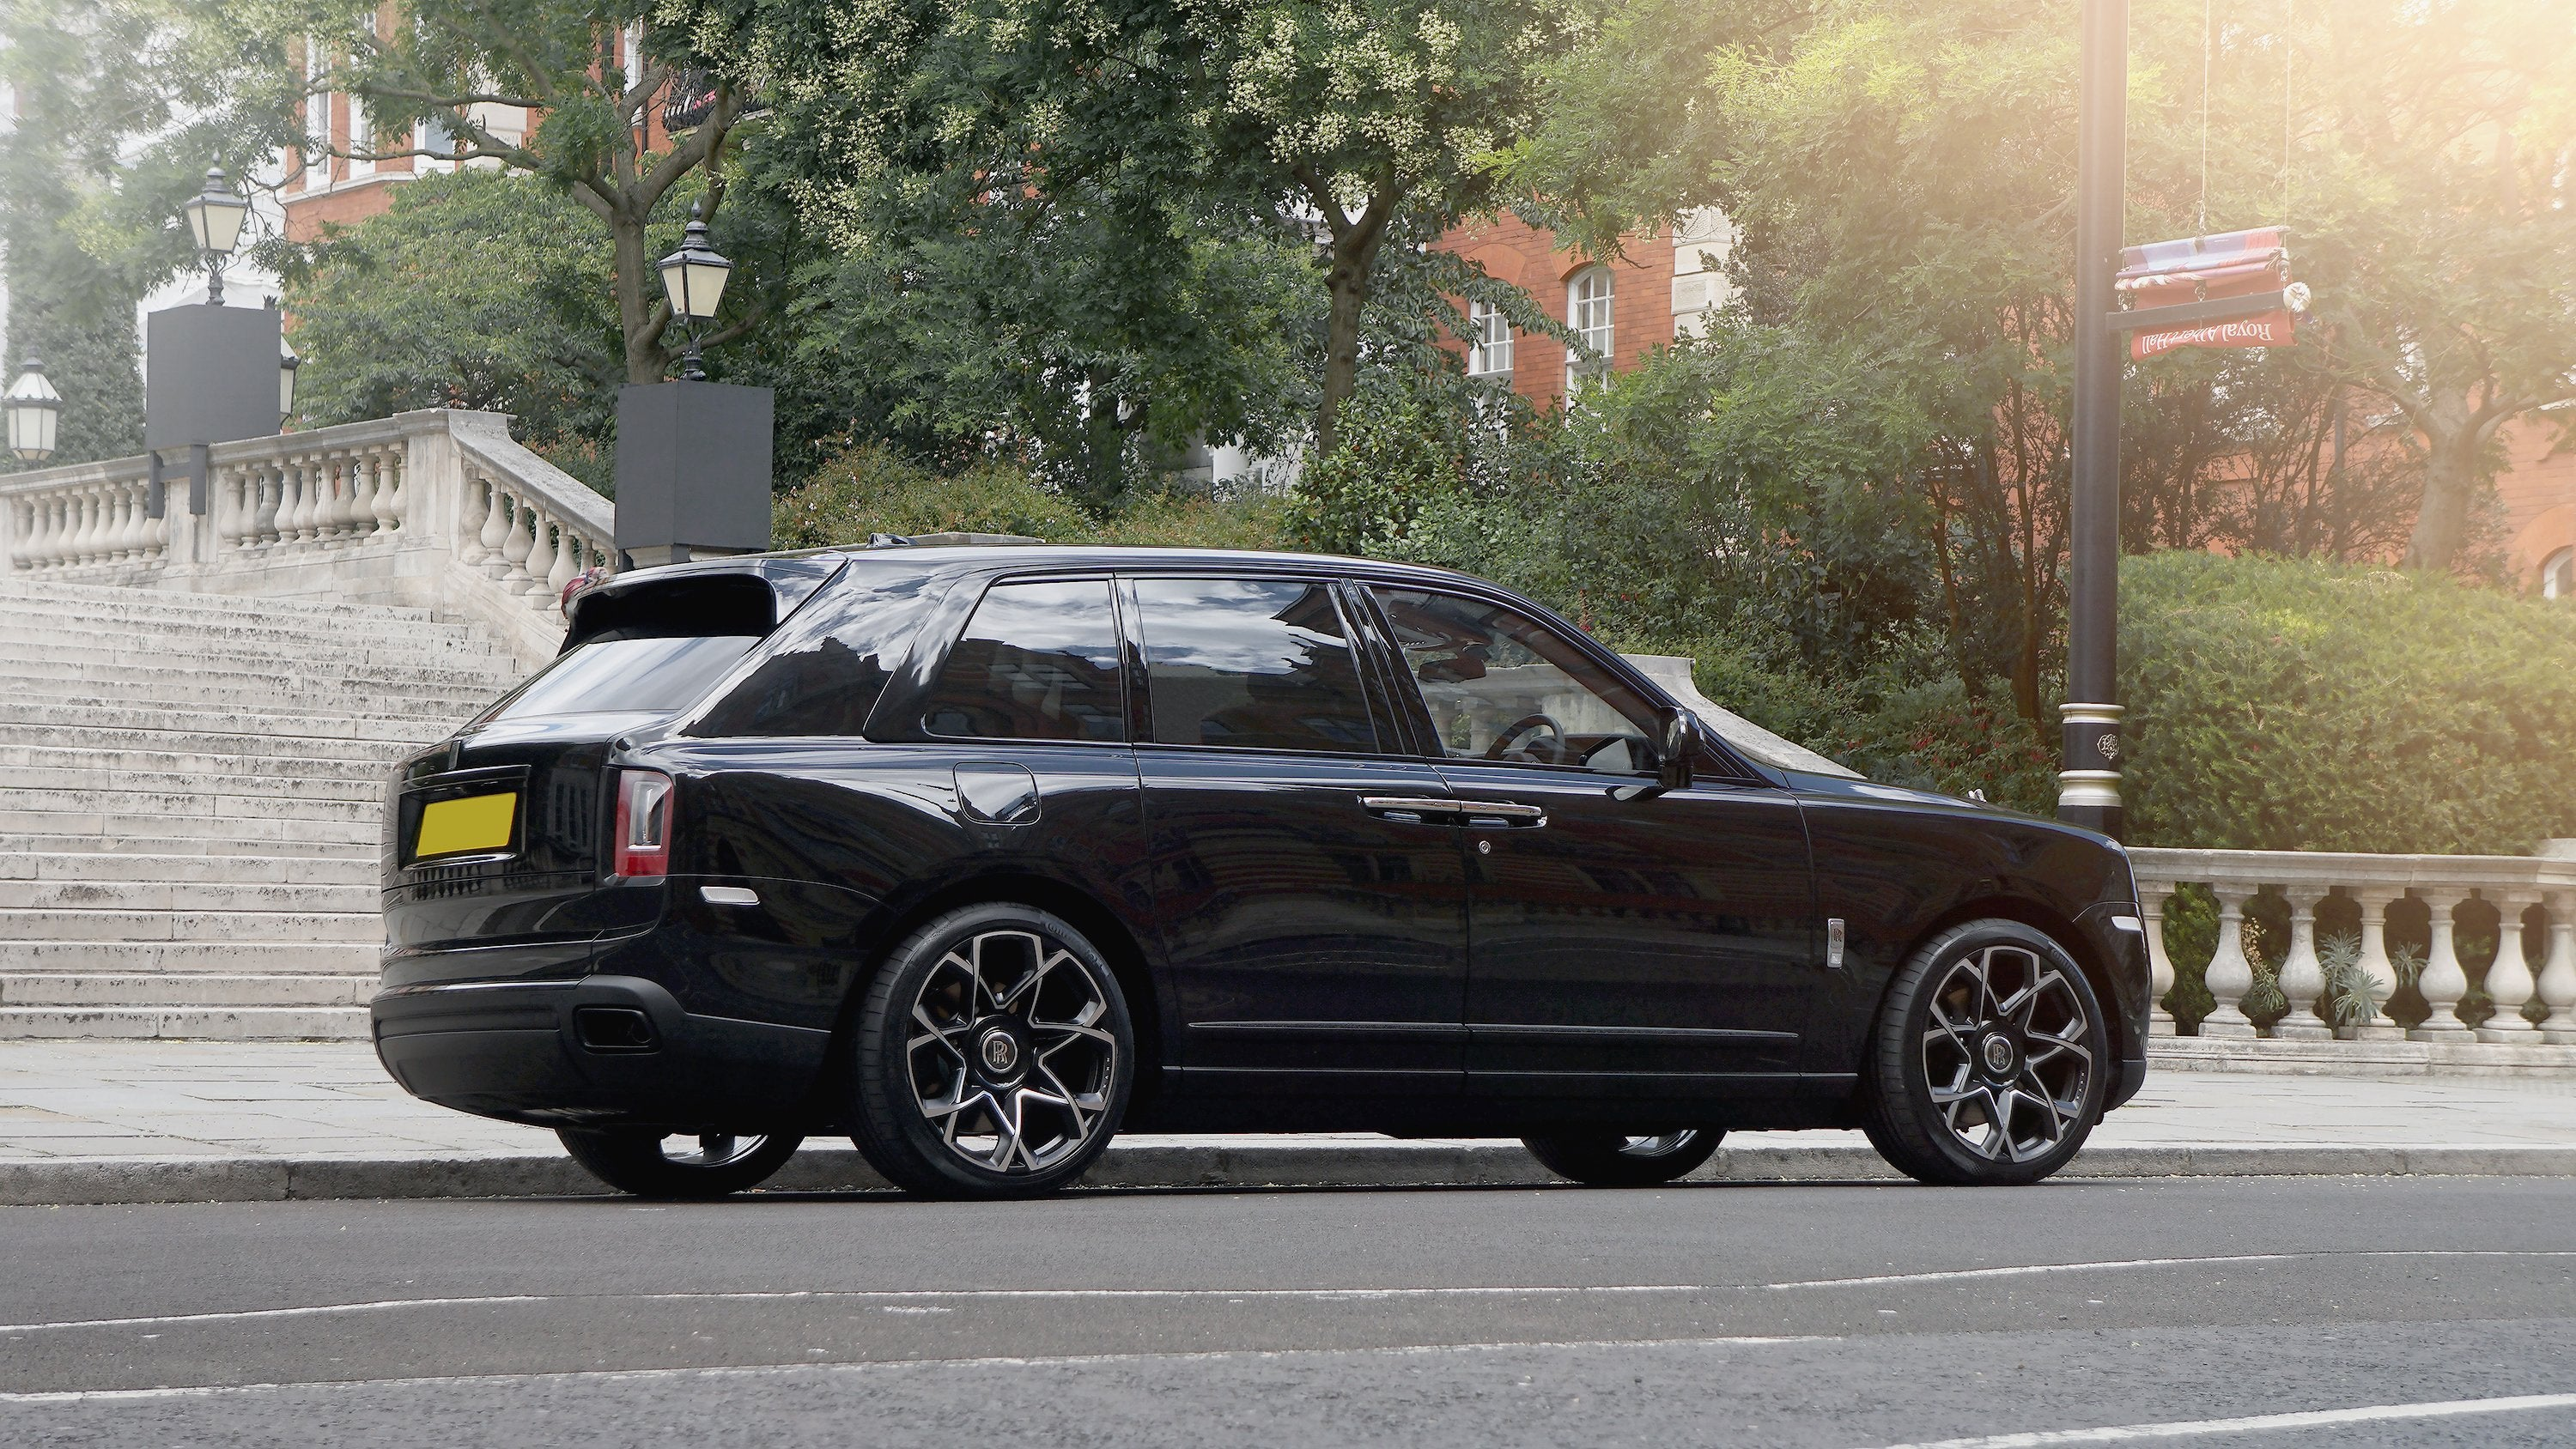 ROLLS ROYCE Cullinan (2018-PRESENT) Tailored Conversion - Project Kahn